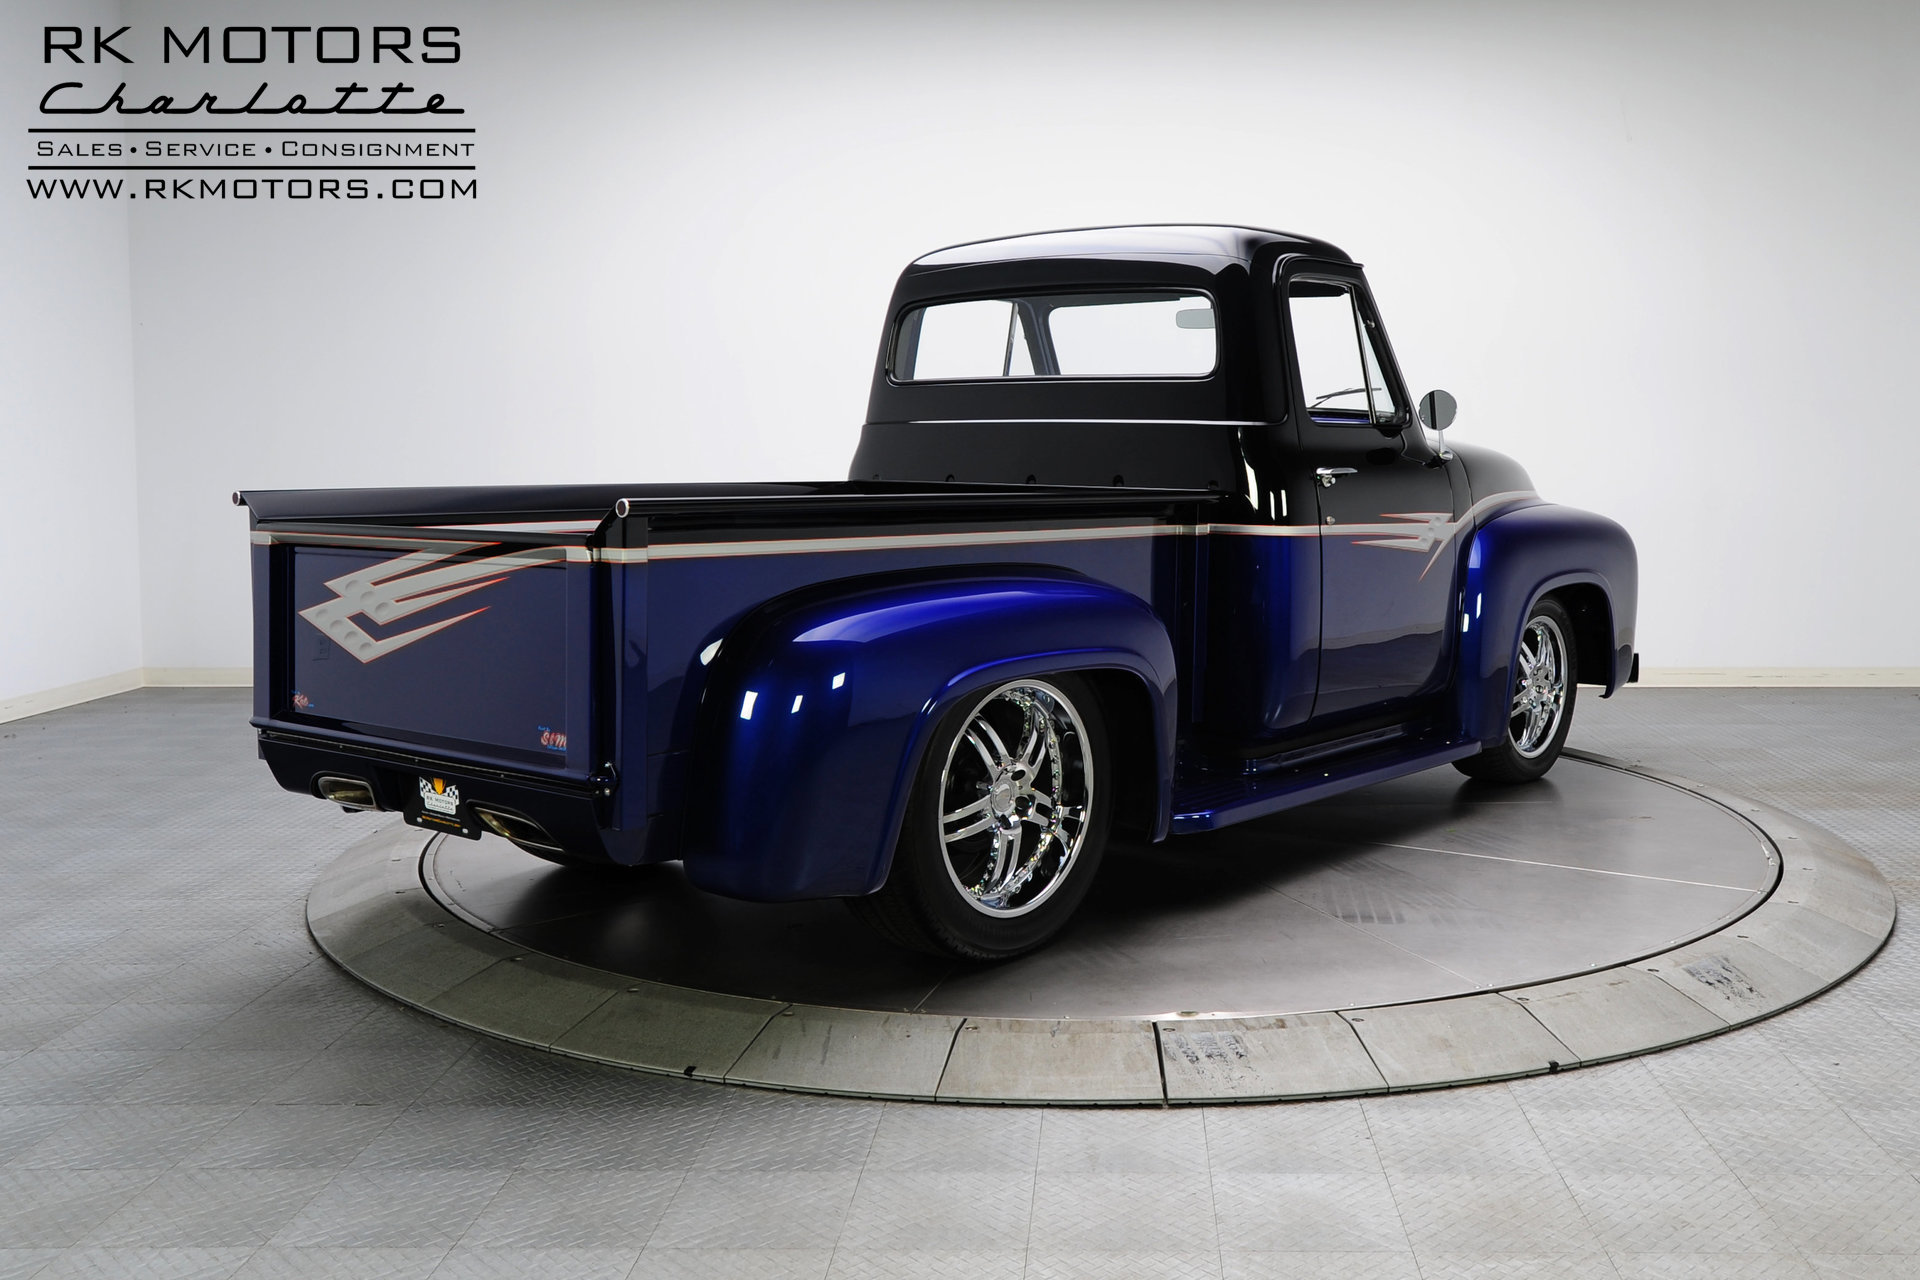 132949 1955 Ford F100 Rk Motors Classic And Performance Cars For Sale Side